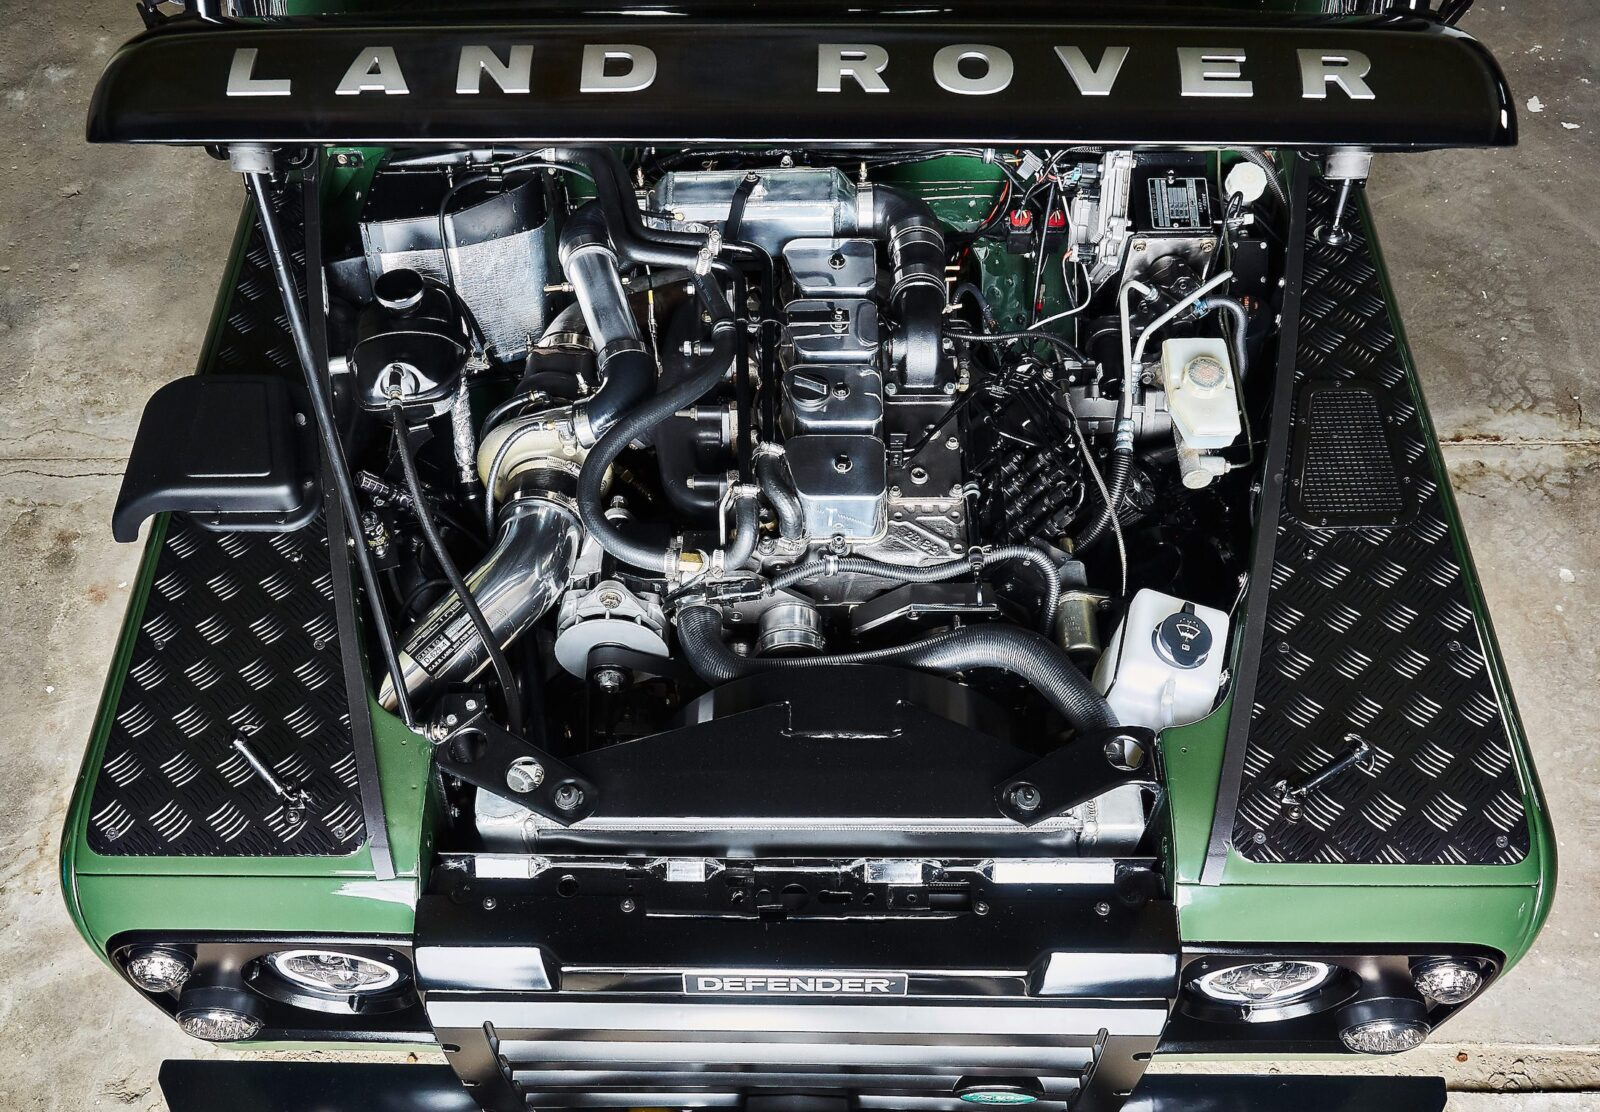 Anvil Land Rover Defender Diesel Engine